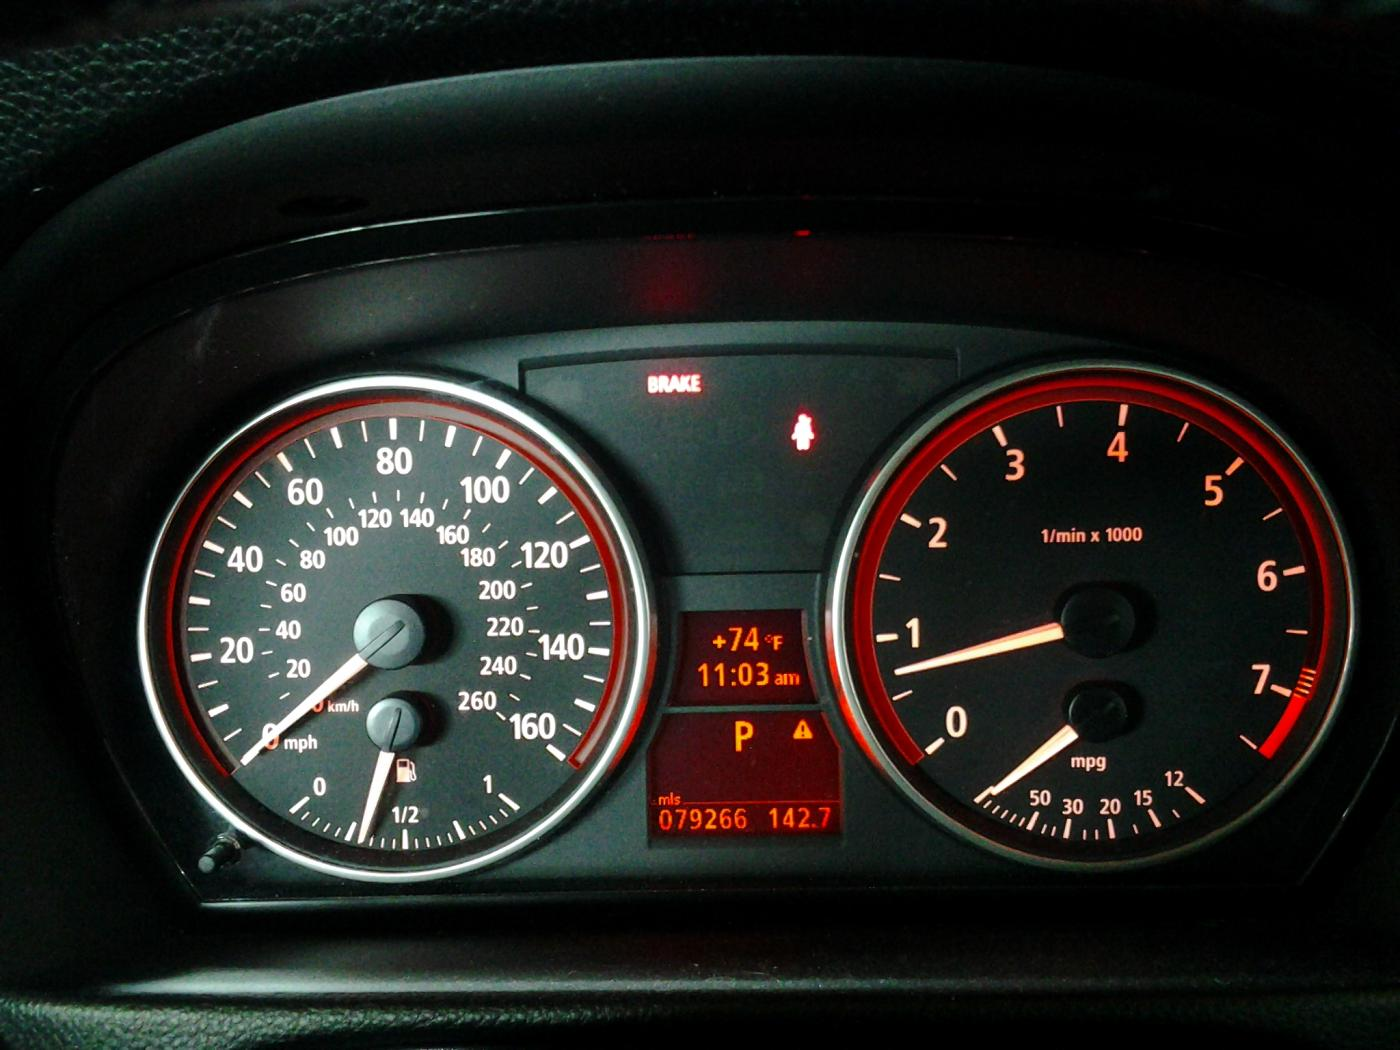 Bmw Z4 Warning Lights Bmw Z4 Dash Lights Warning Symbols